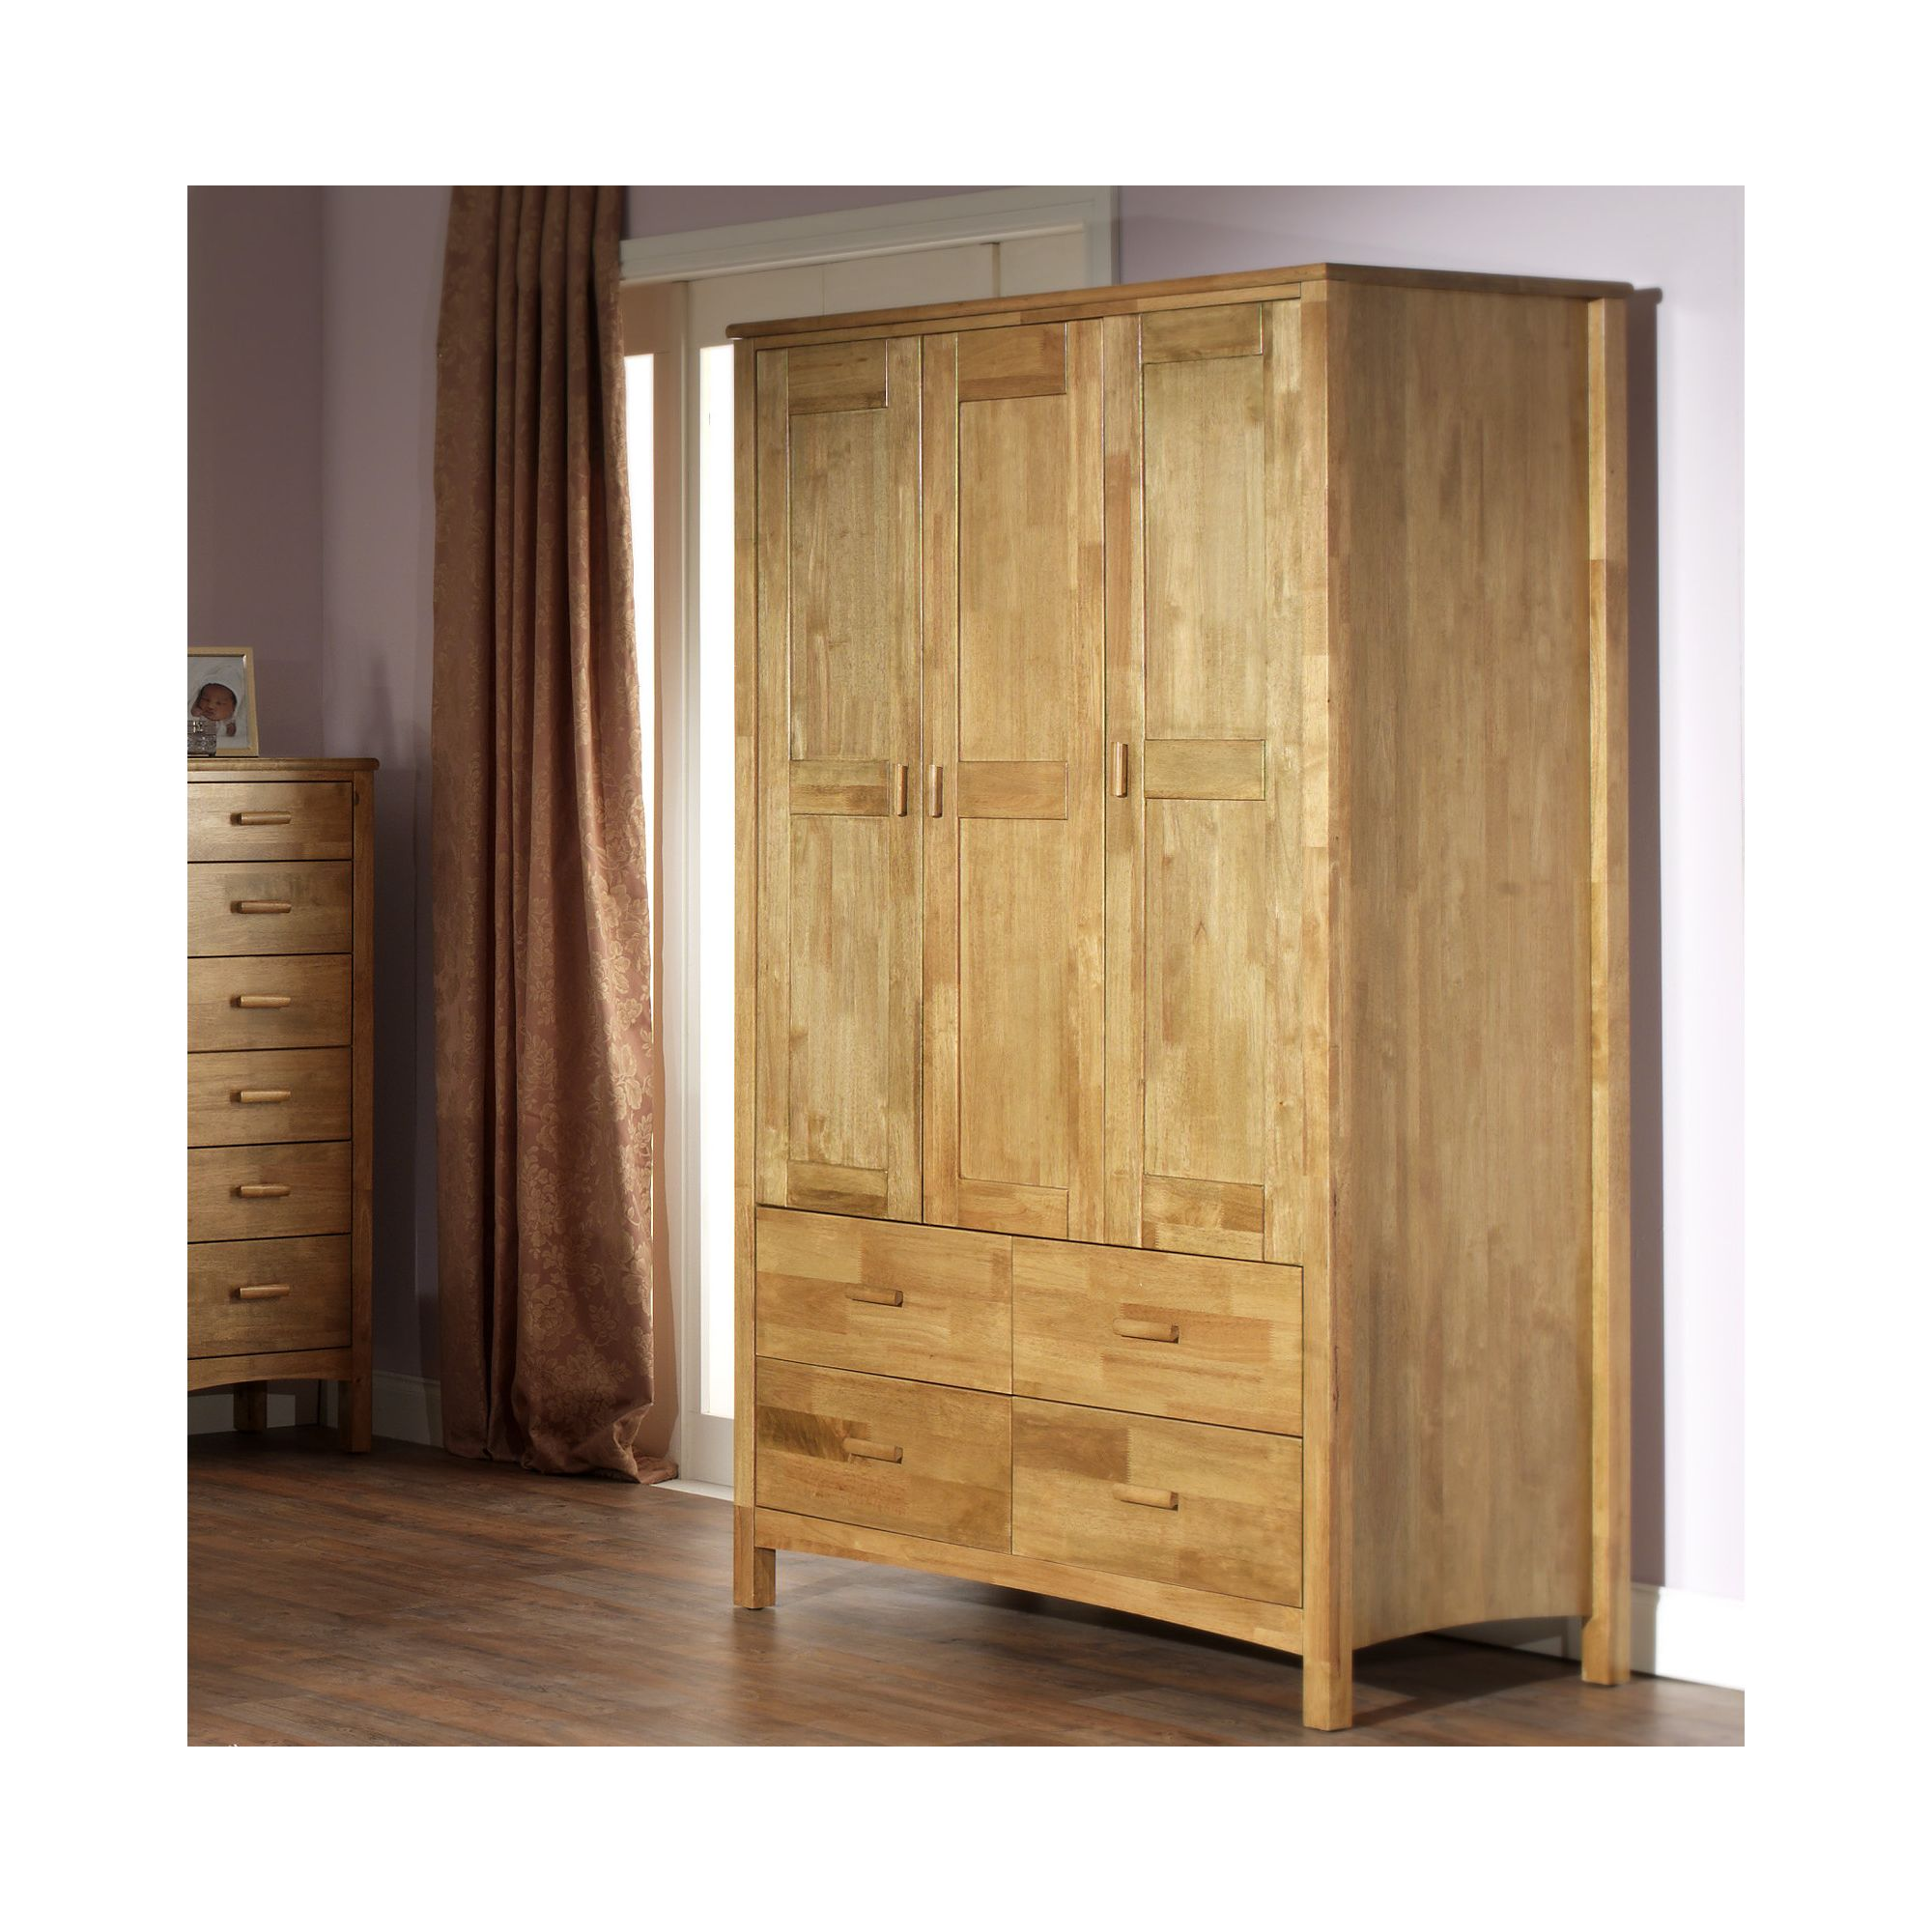 Serene Furnishings Eleanor 3 Door Wardrobe - Honey Oak at Tesco Direct